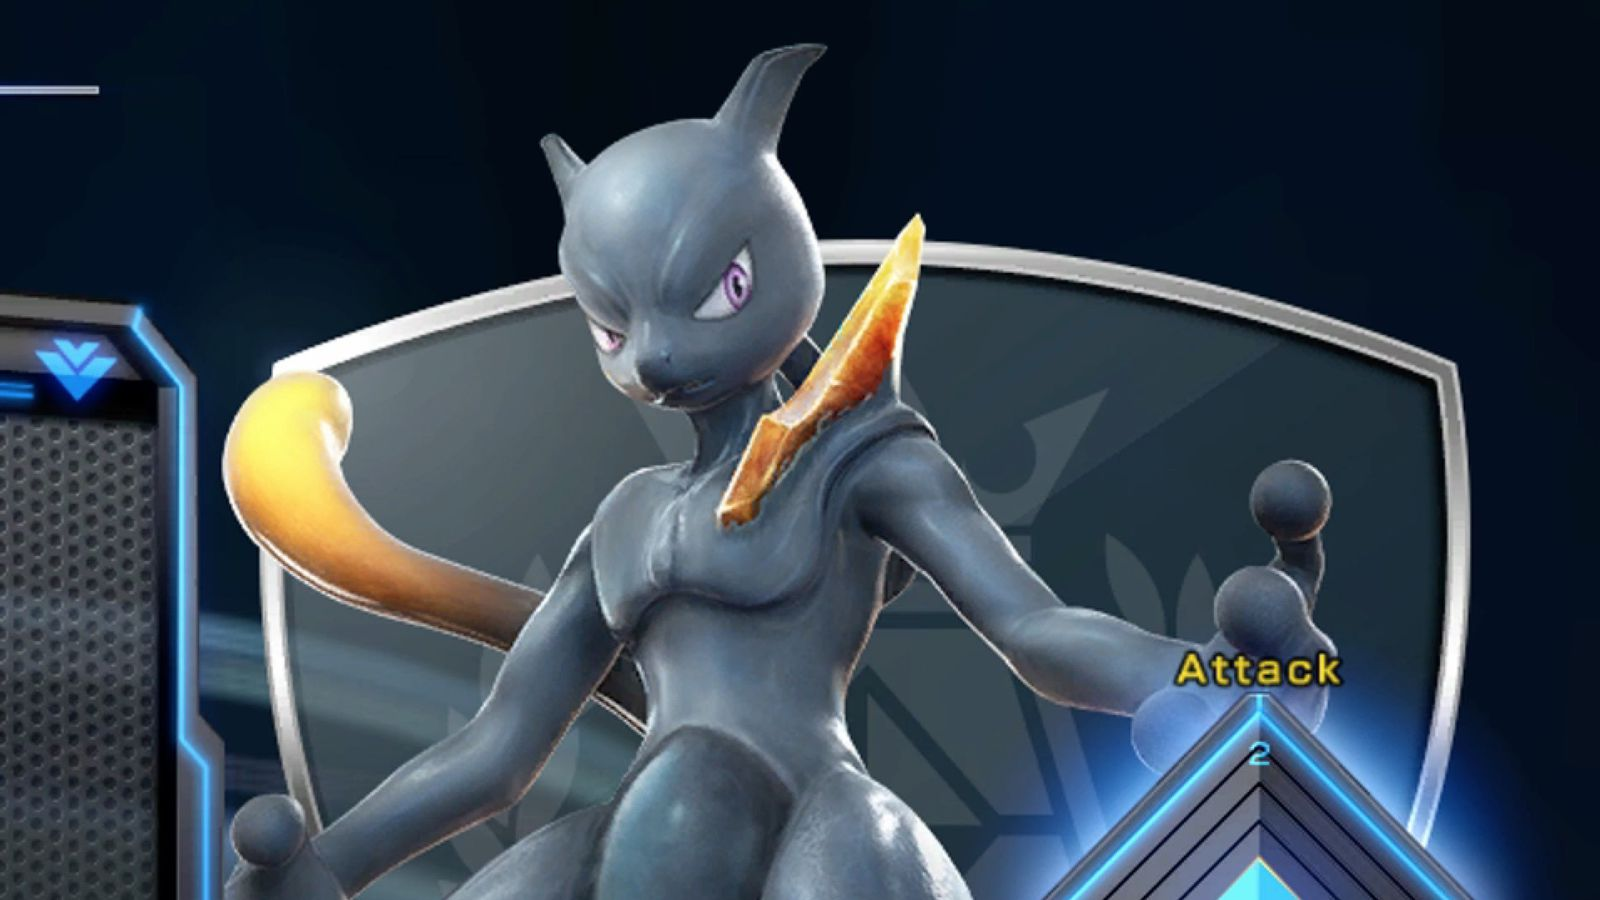 Is Shadow Mewtwo Canon The Pok 233 Mon Company Won T Say